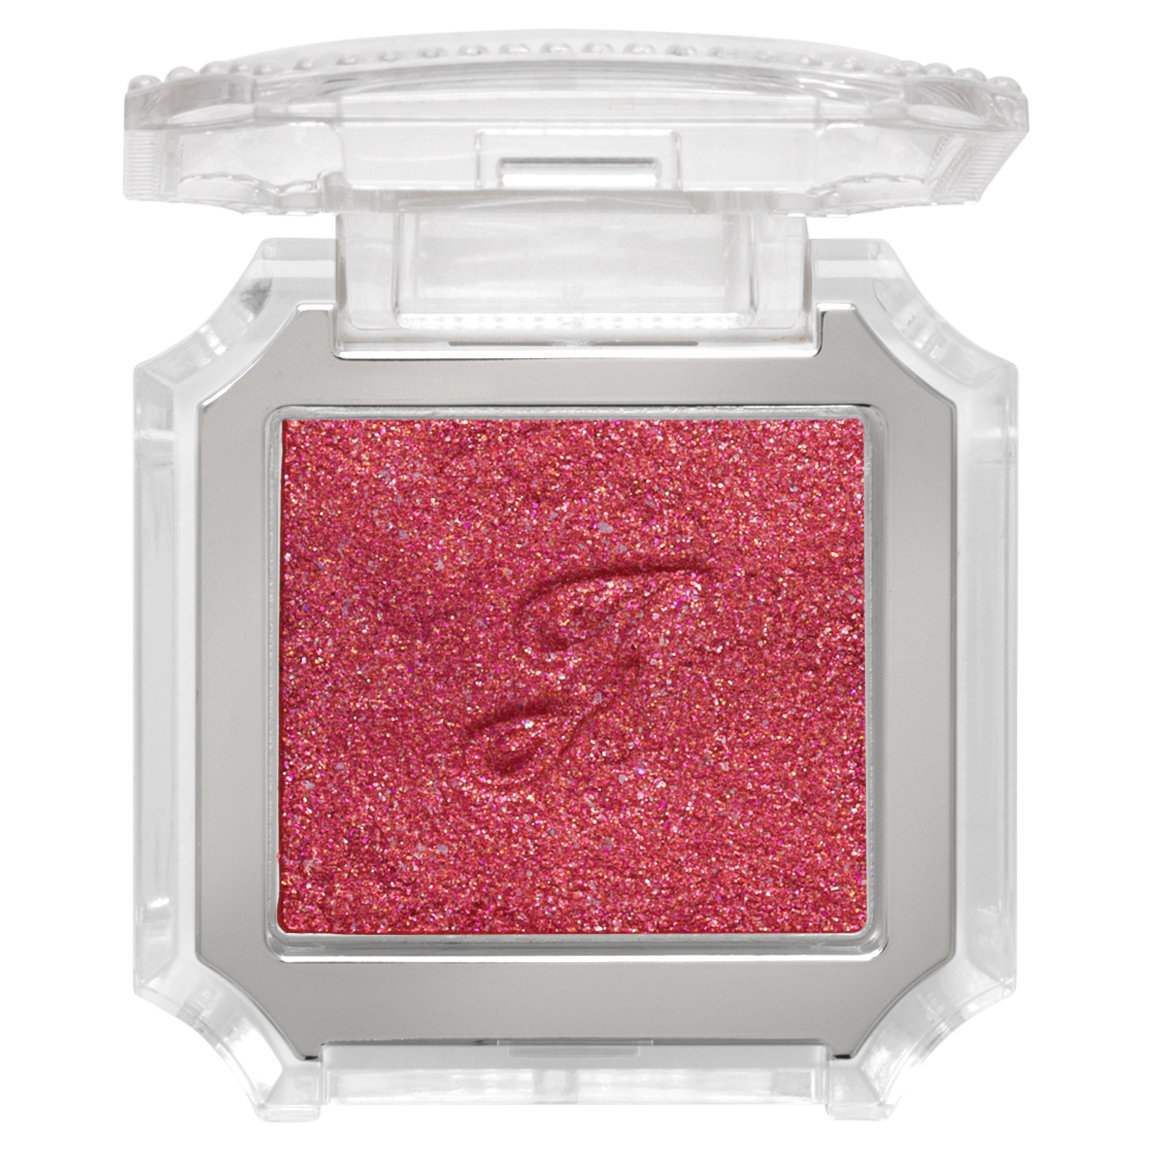 JILL STUART Beauty Iconic Look Eyeshadow G507 Glitter product swatch.